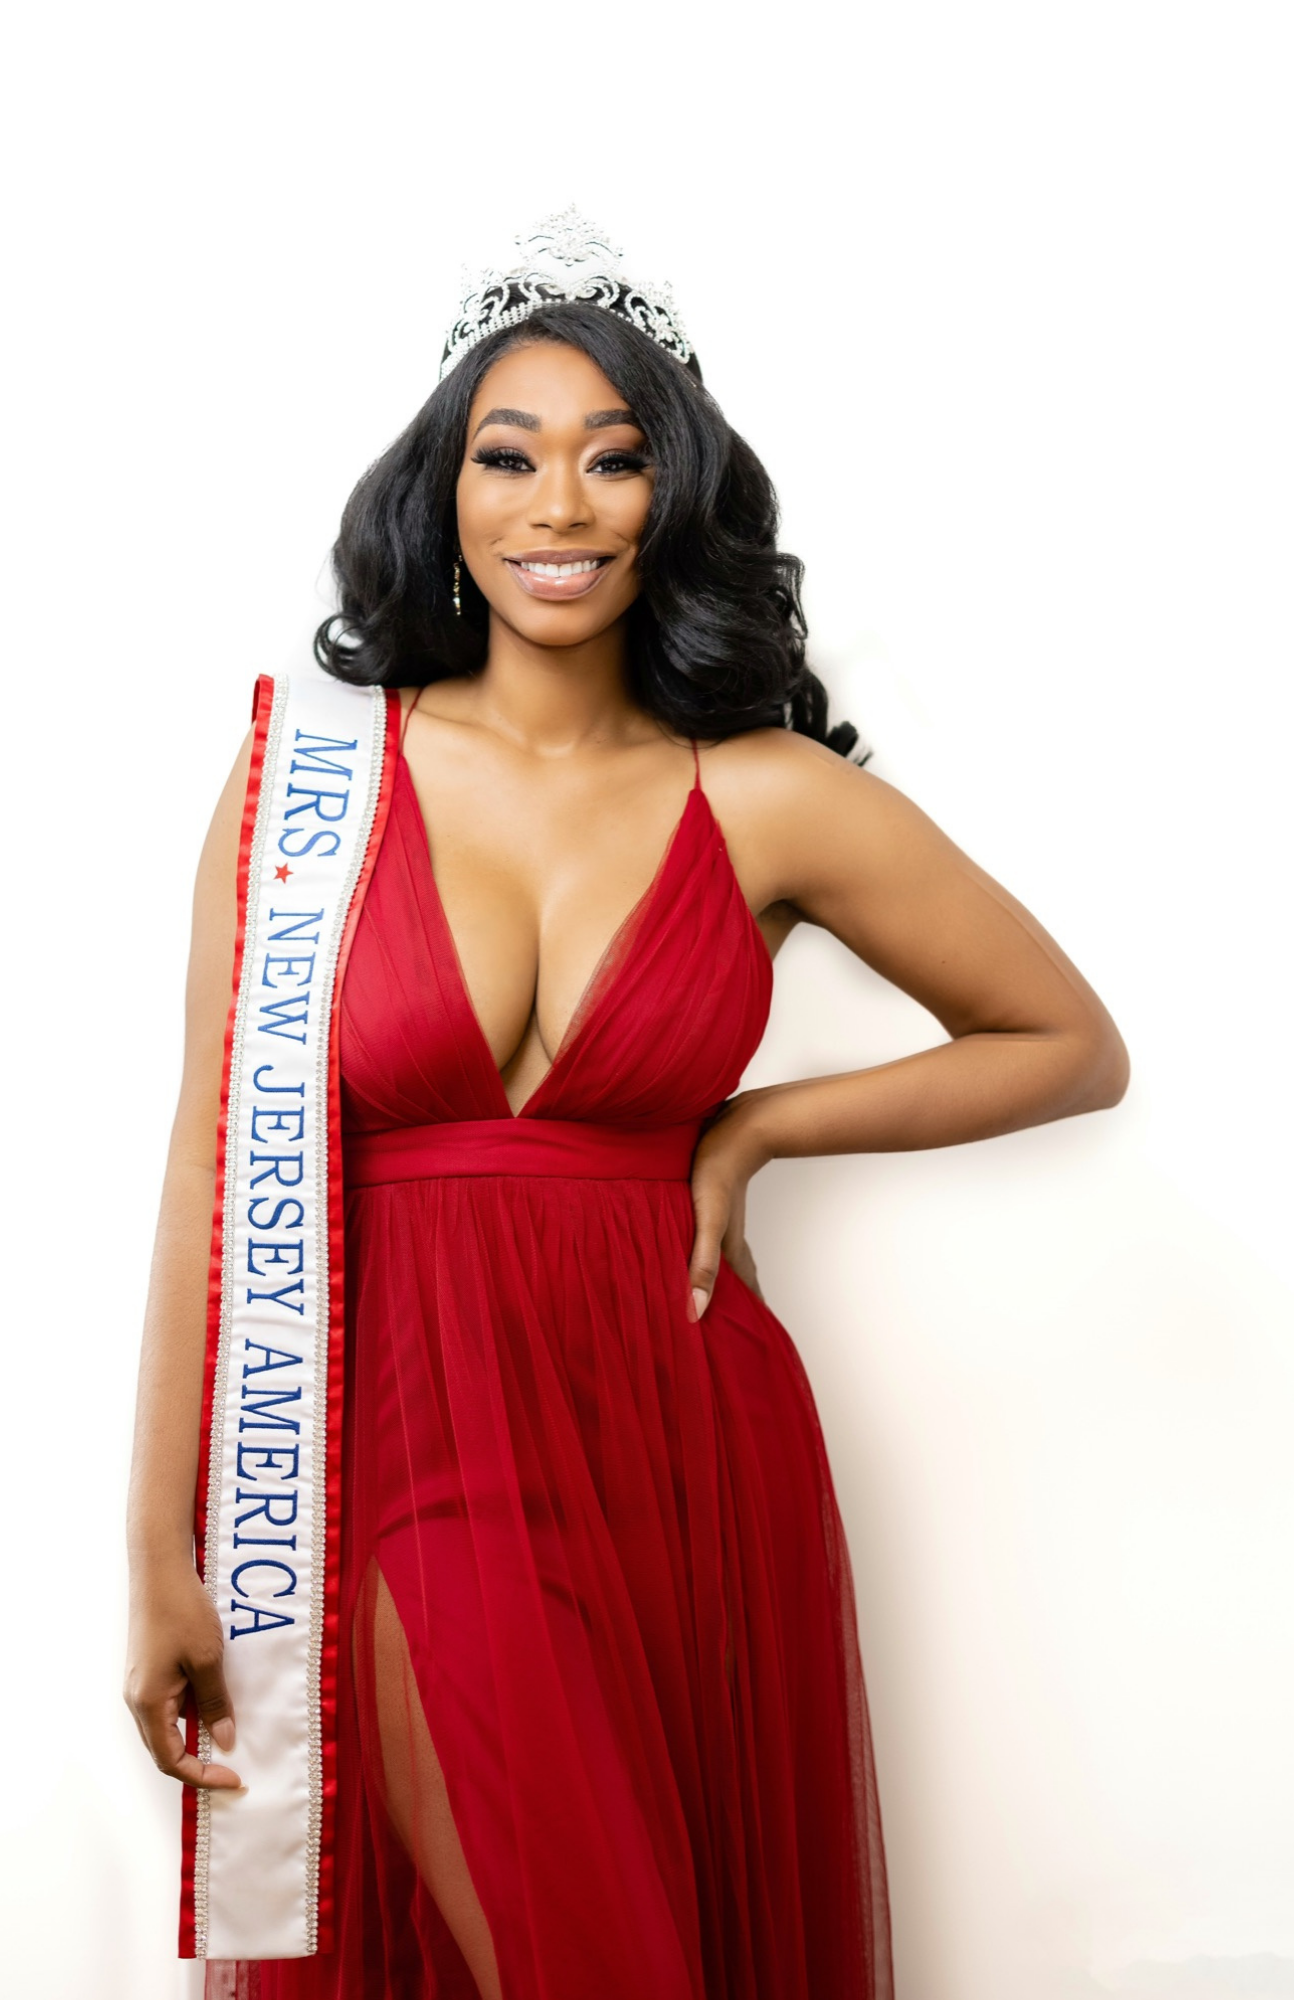 mrs new jersey 2020, Chimere Nicole Haskins